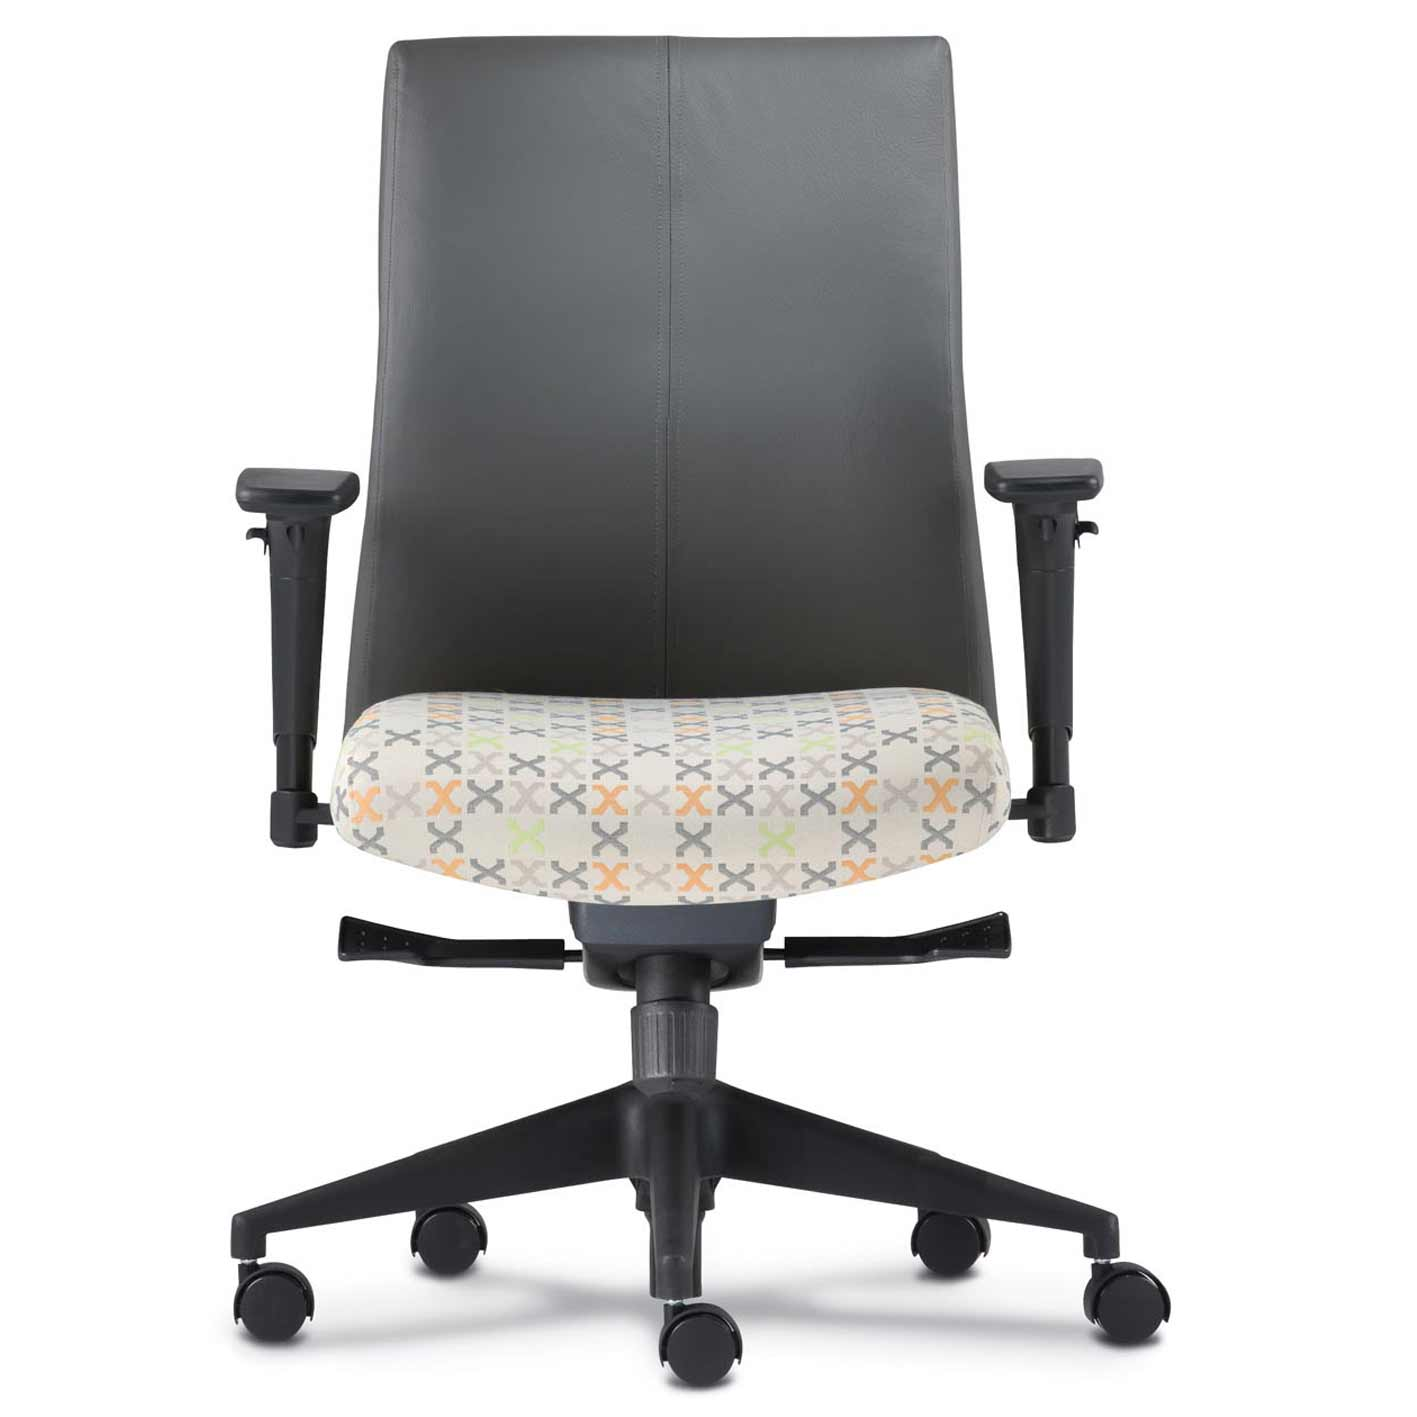 Maryland cotton mesh chair with foam seating